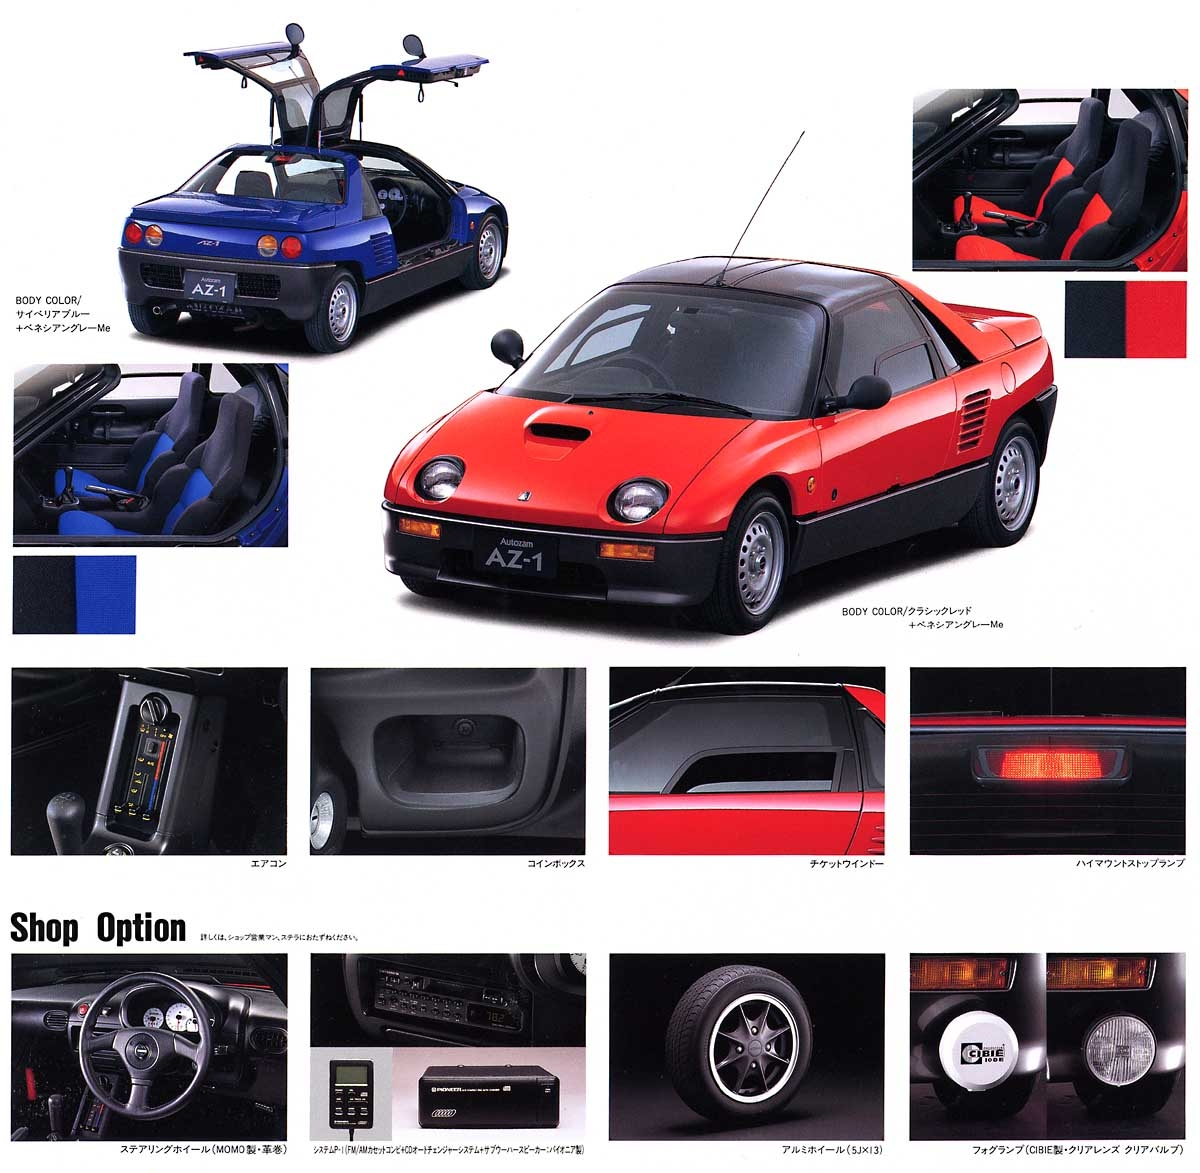 Main Blog > The Mazda AZ-1 Autozam.